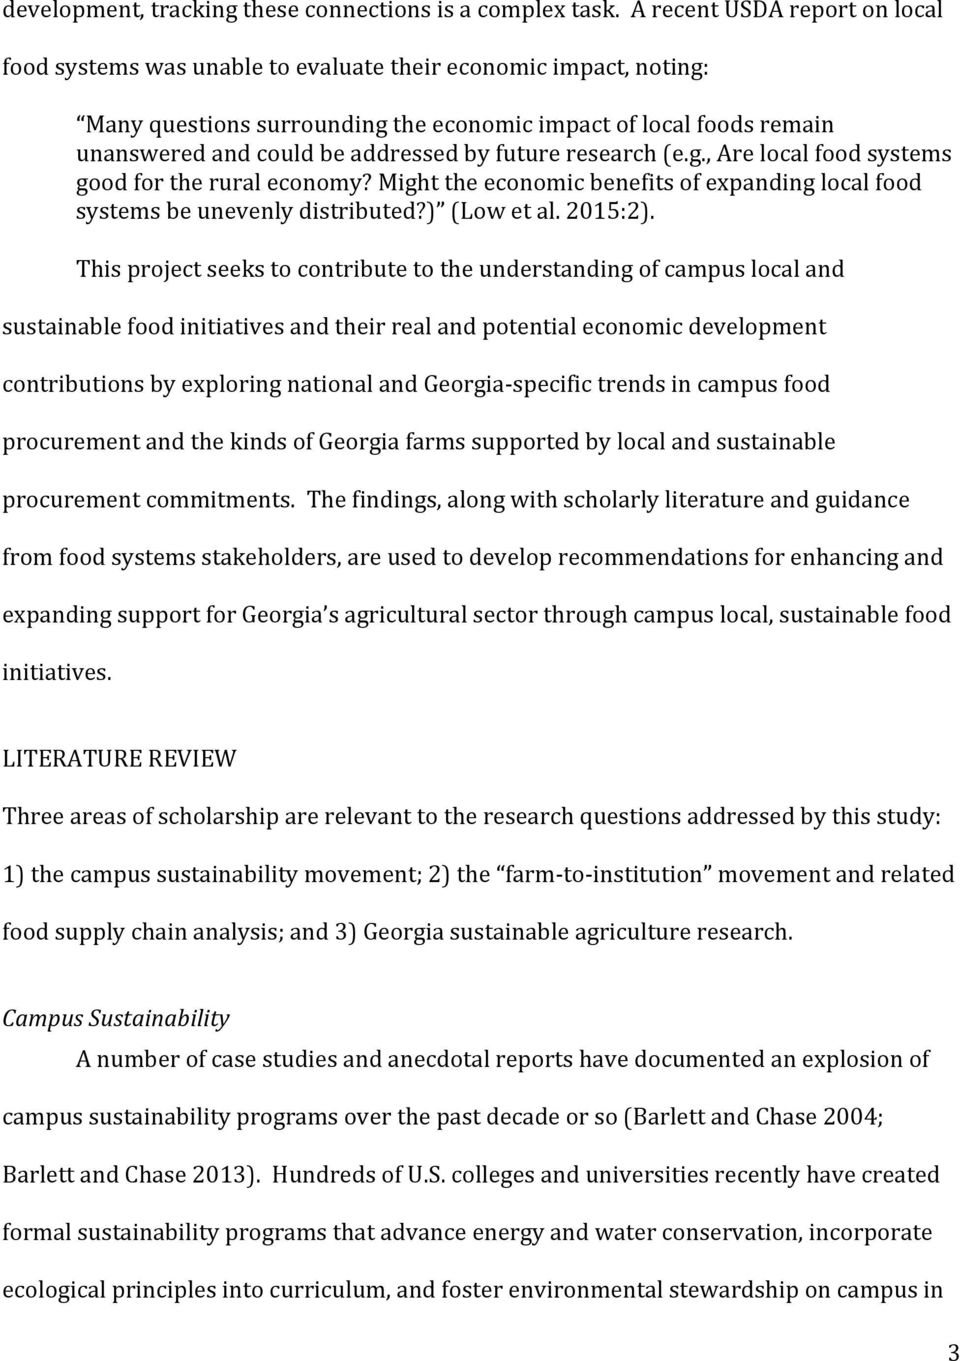 by future research (e.g., Are local food systems good for the rural economy? Might the economic benefits of expanding local food systems be unevenly distributed?) (Low et al. 2015:2).